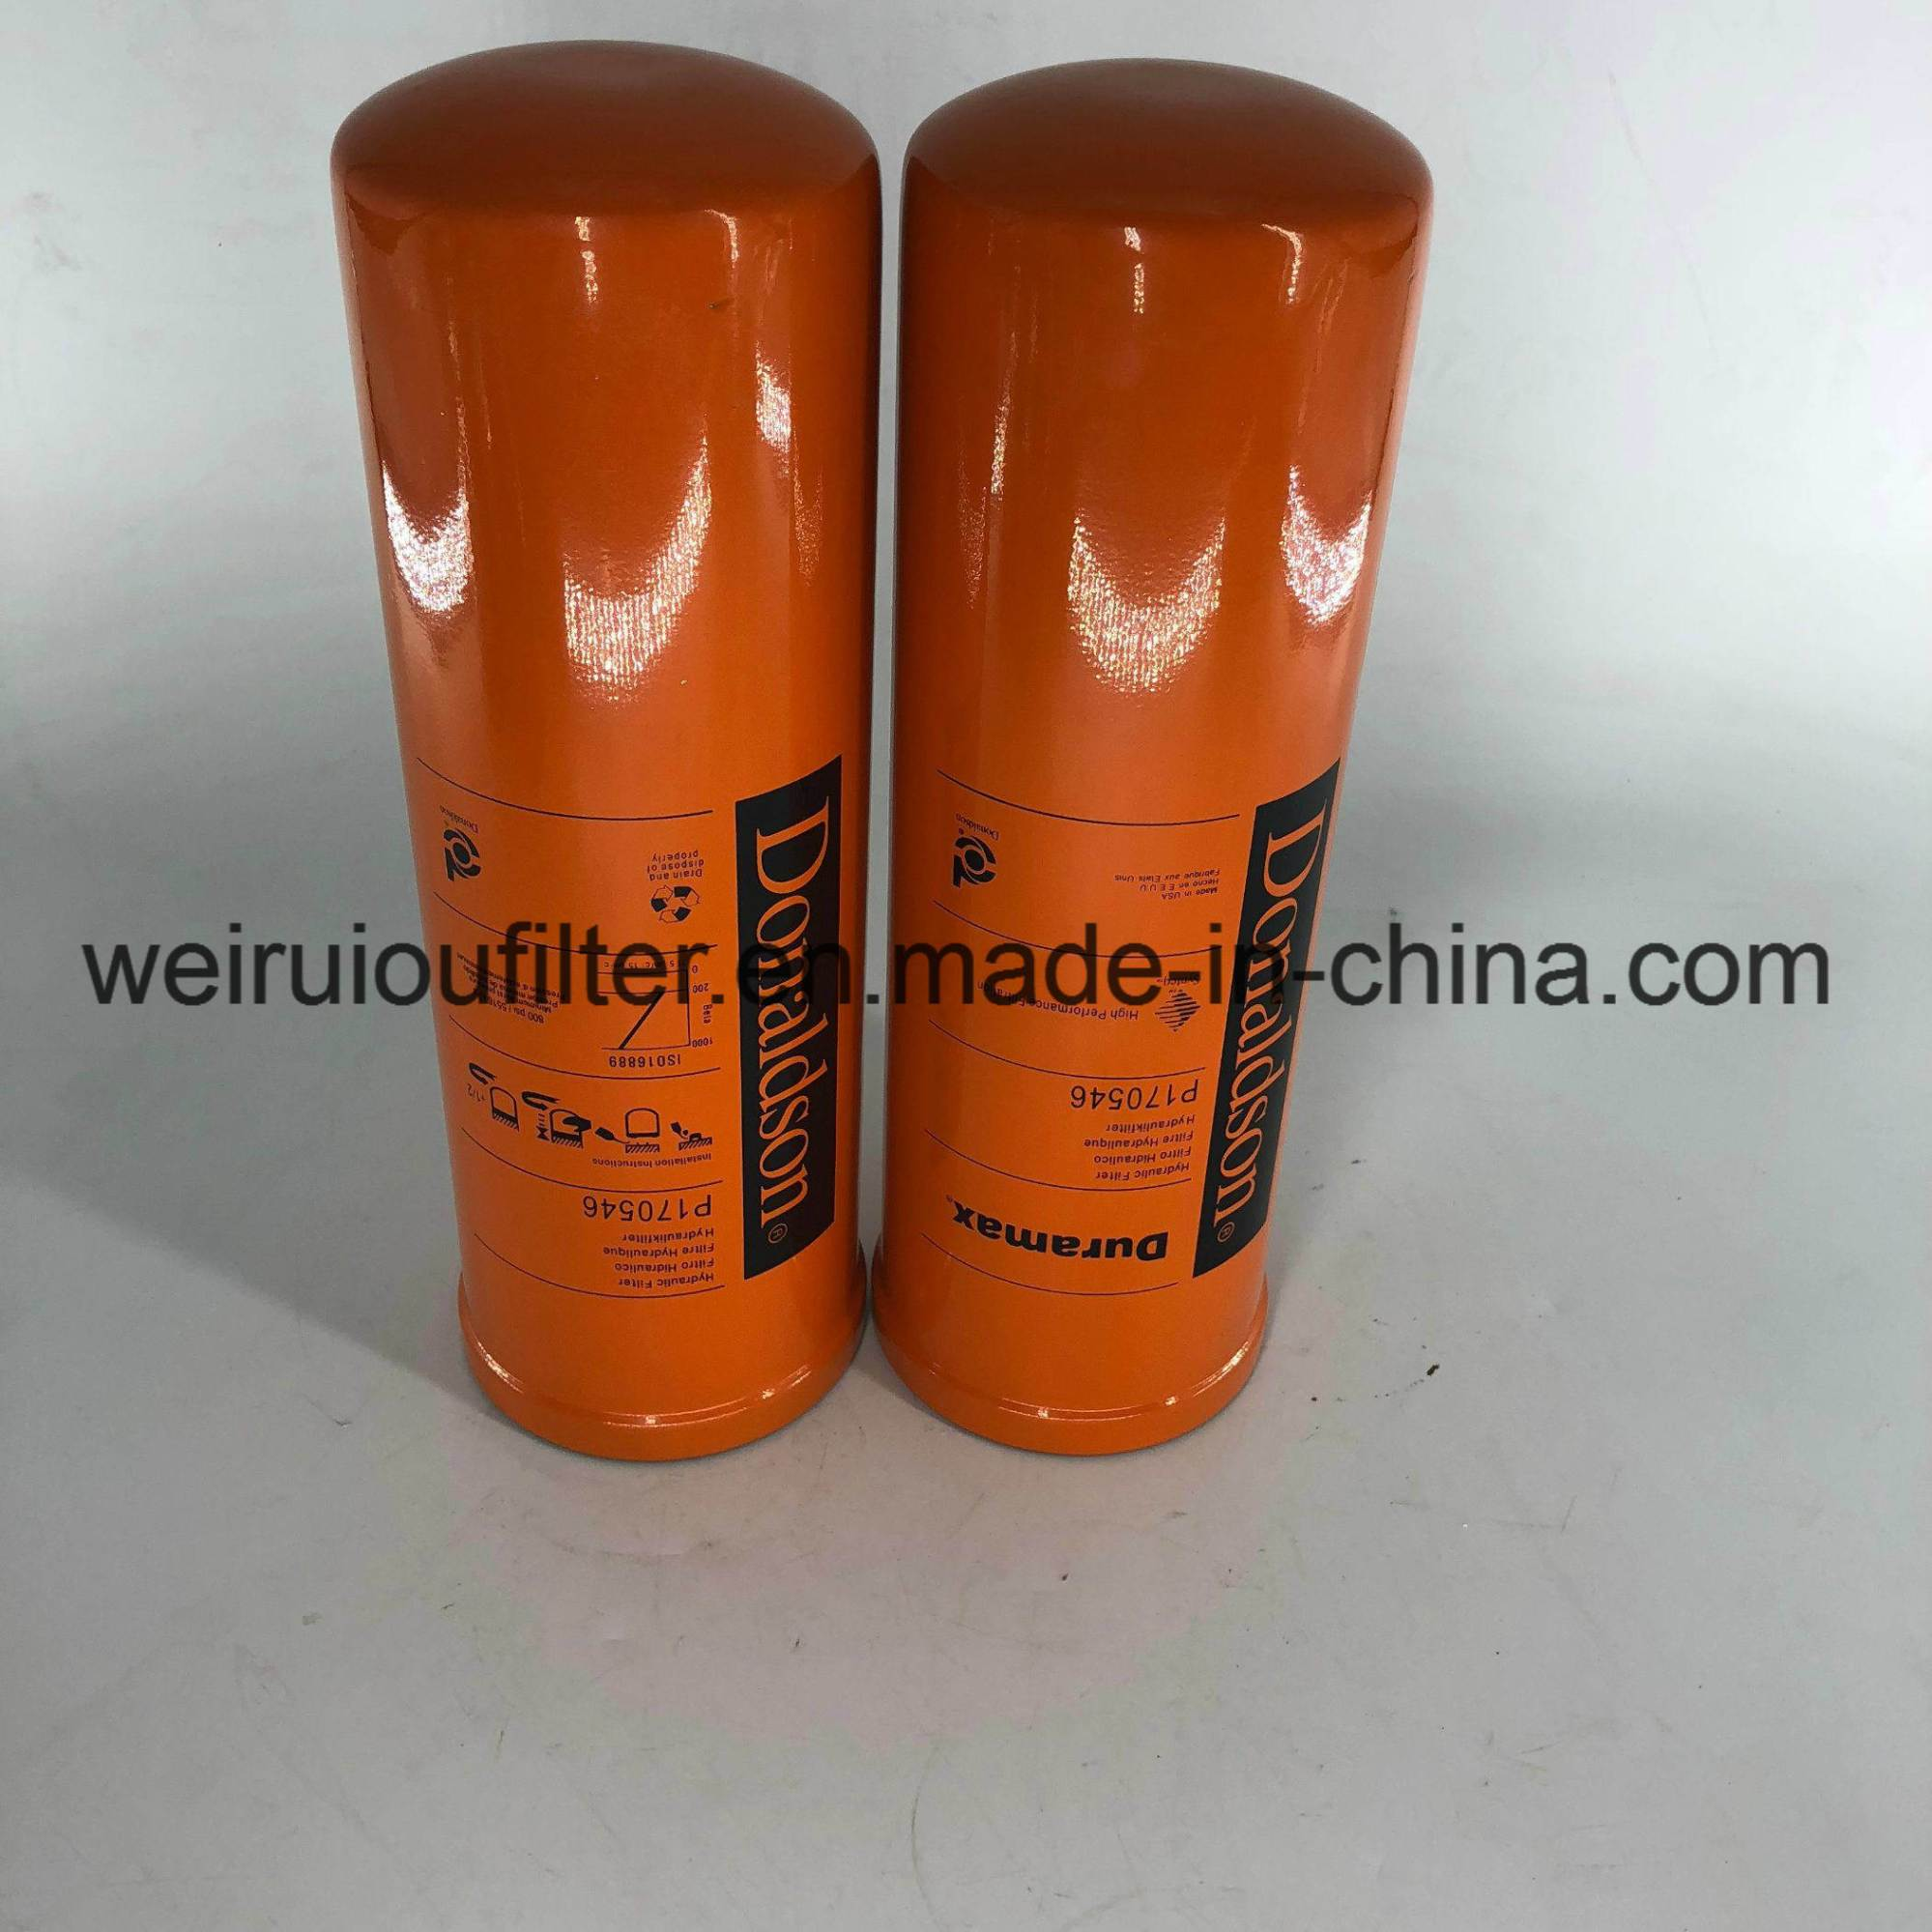 hight resolution of china donaldson fuel filters donaldson fuel filters manufacturers suppliers made in china com